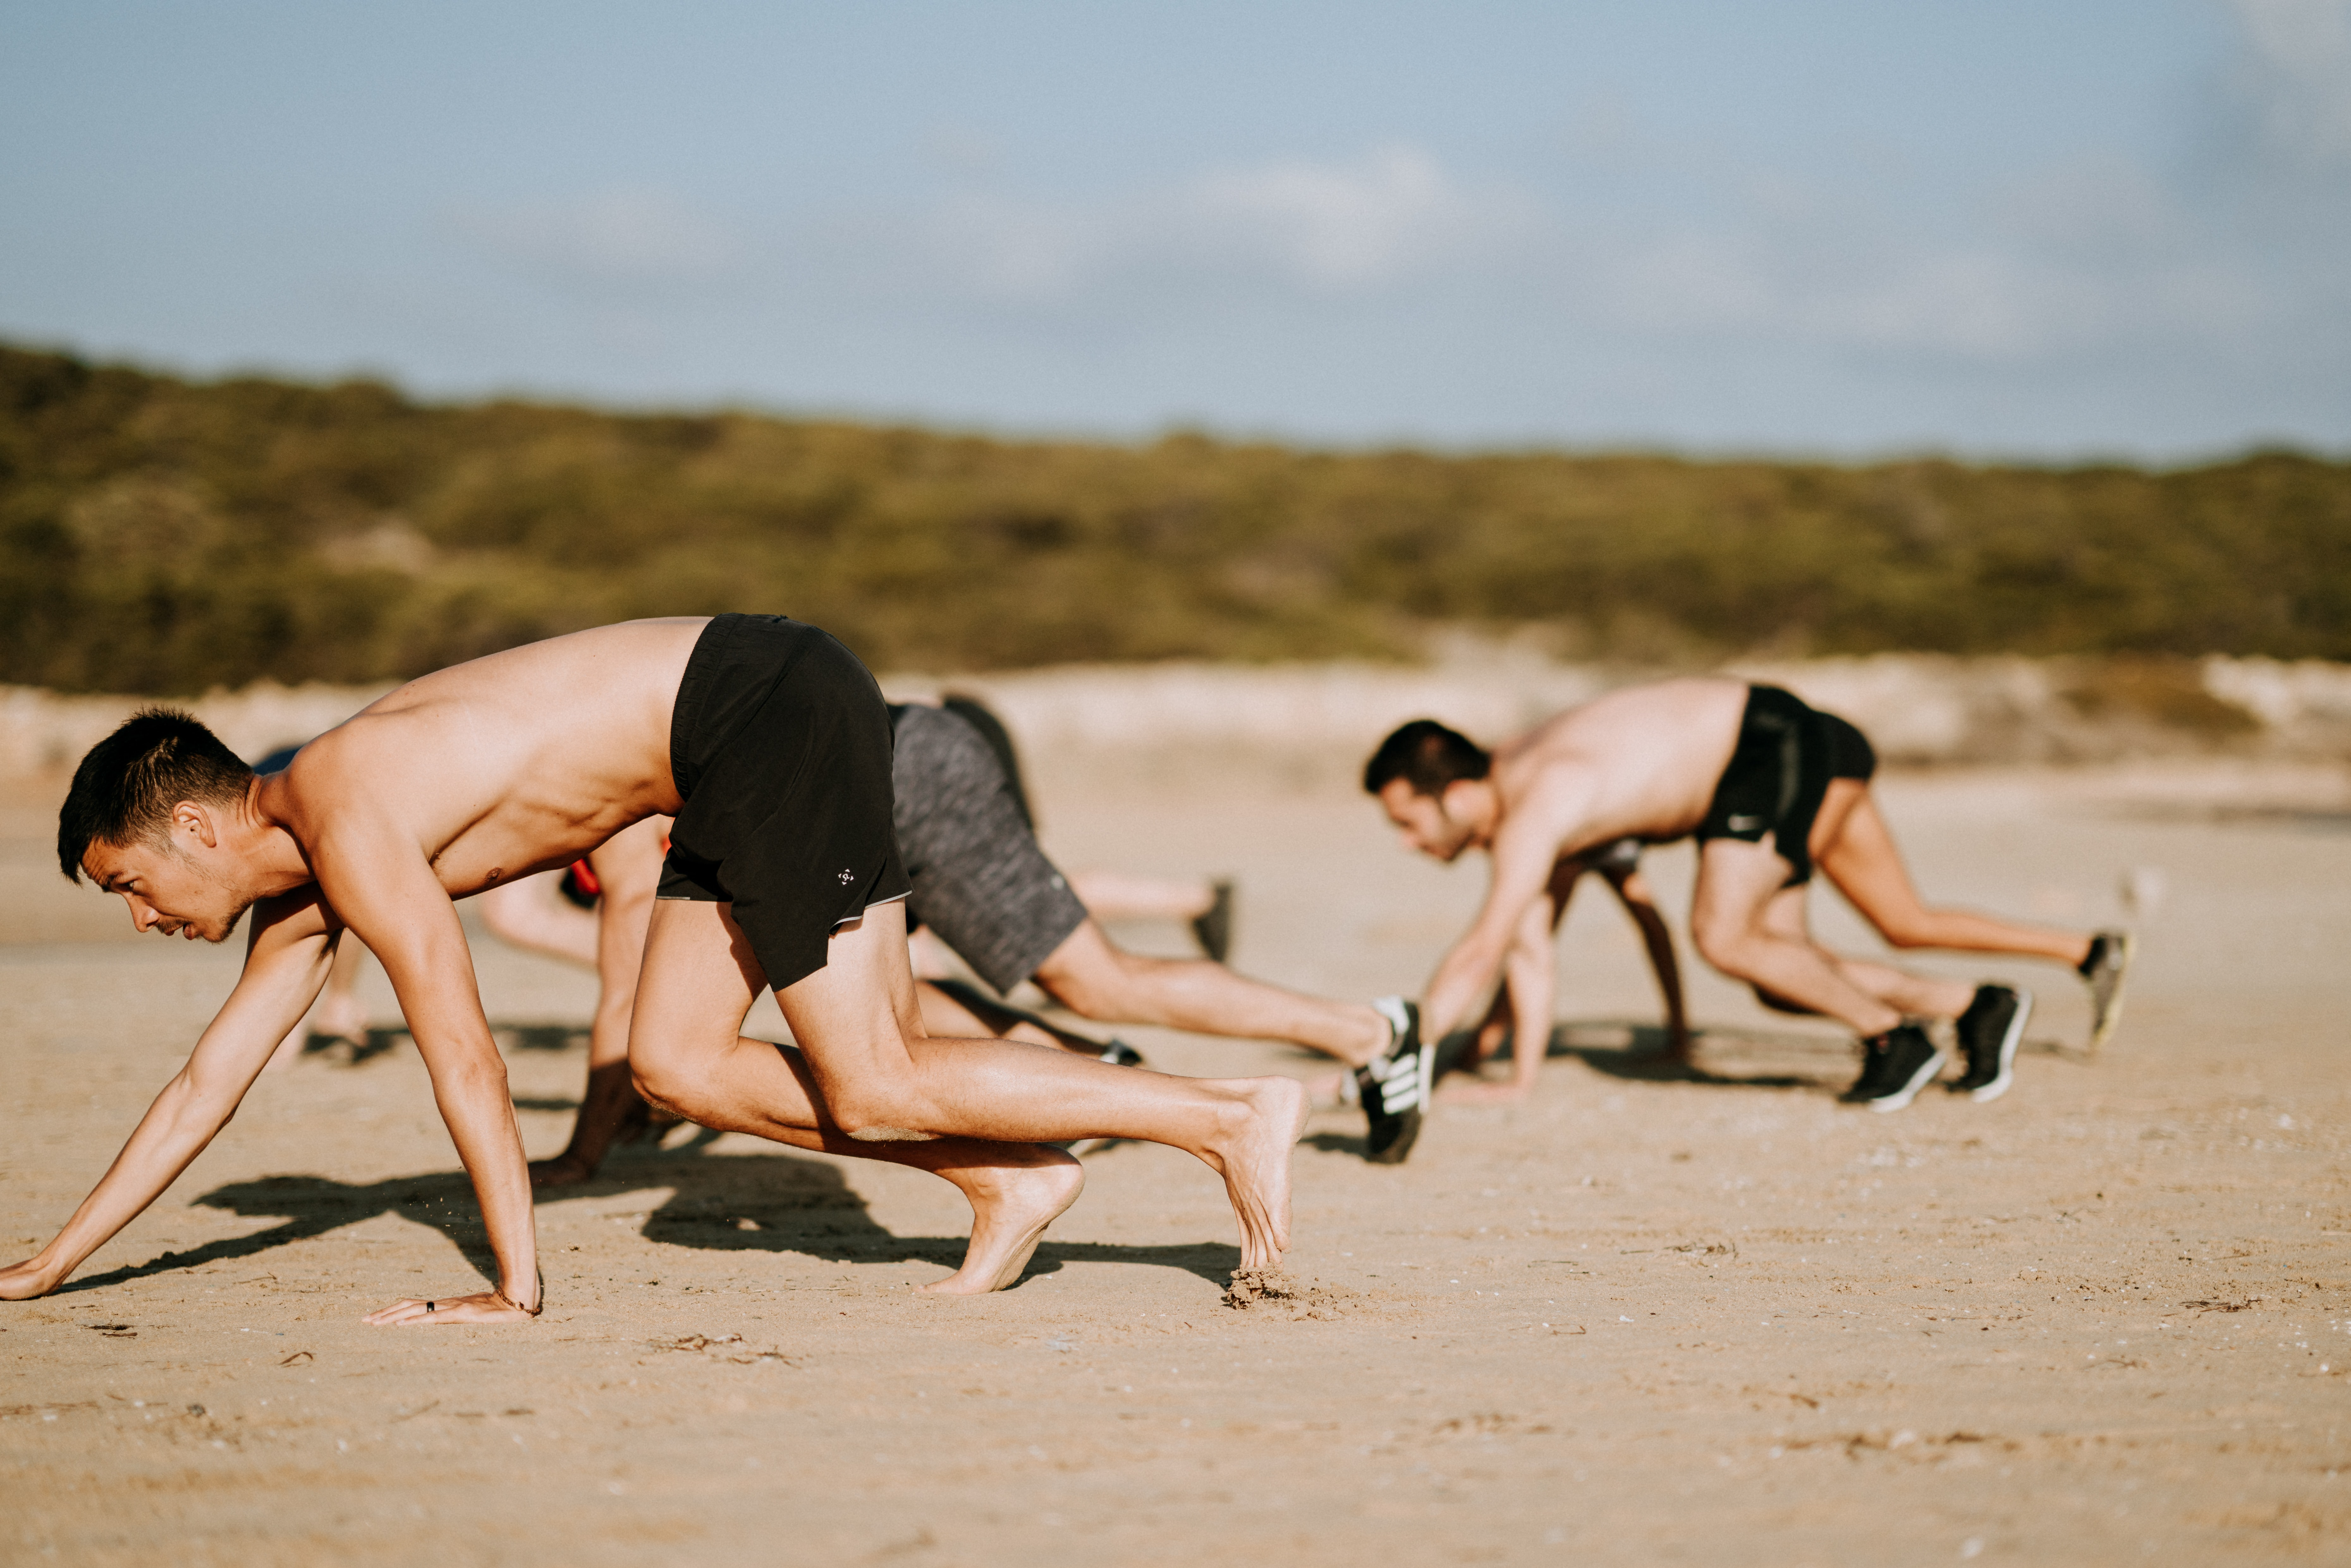 group of men crawling at sand covered ground